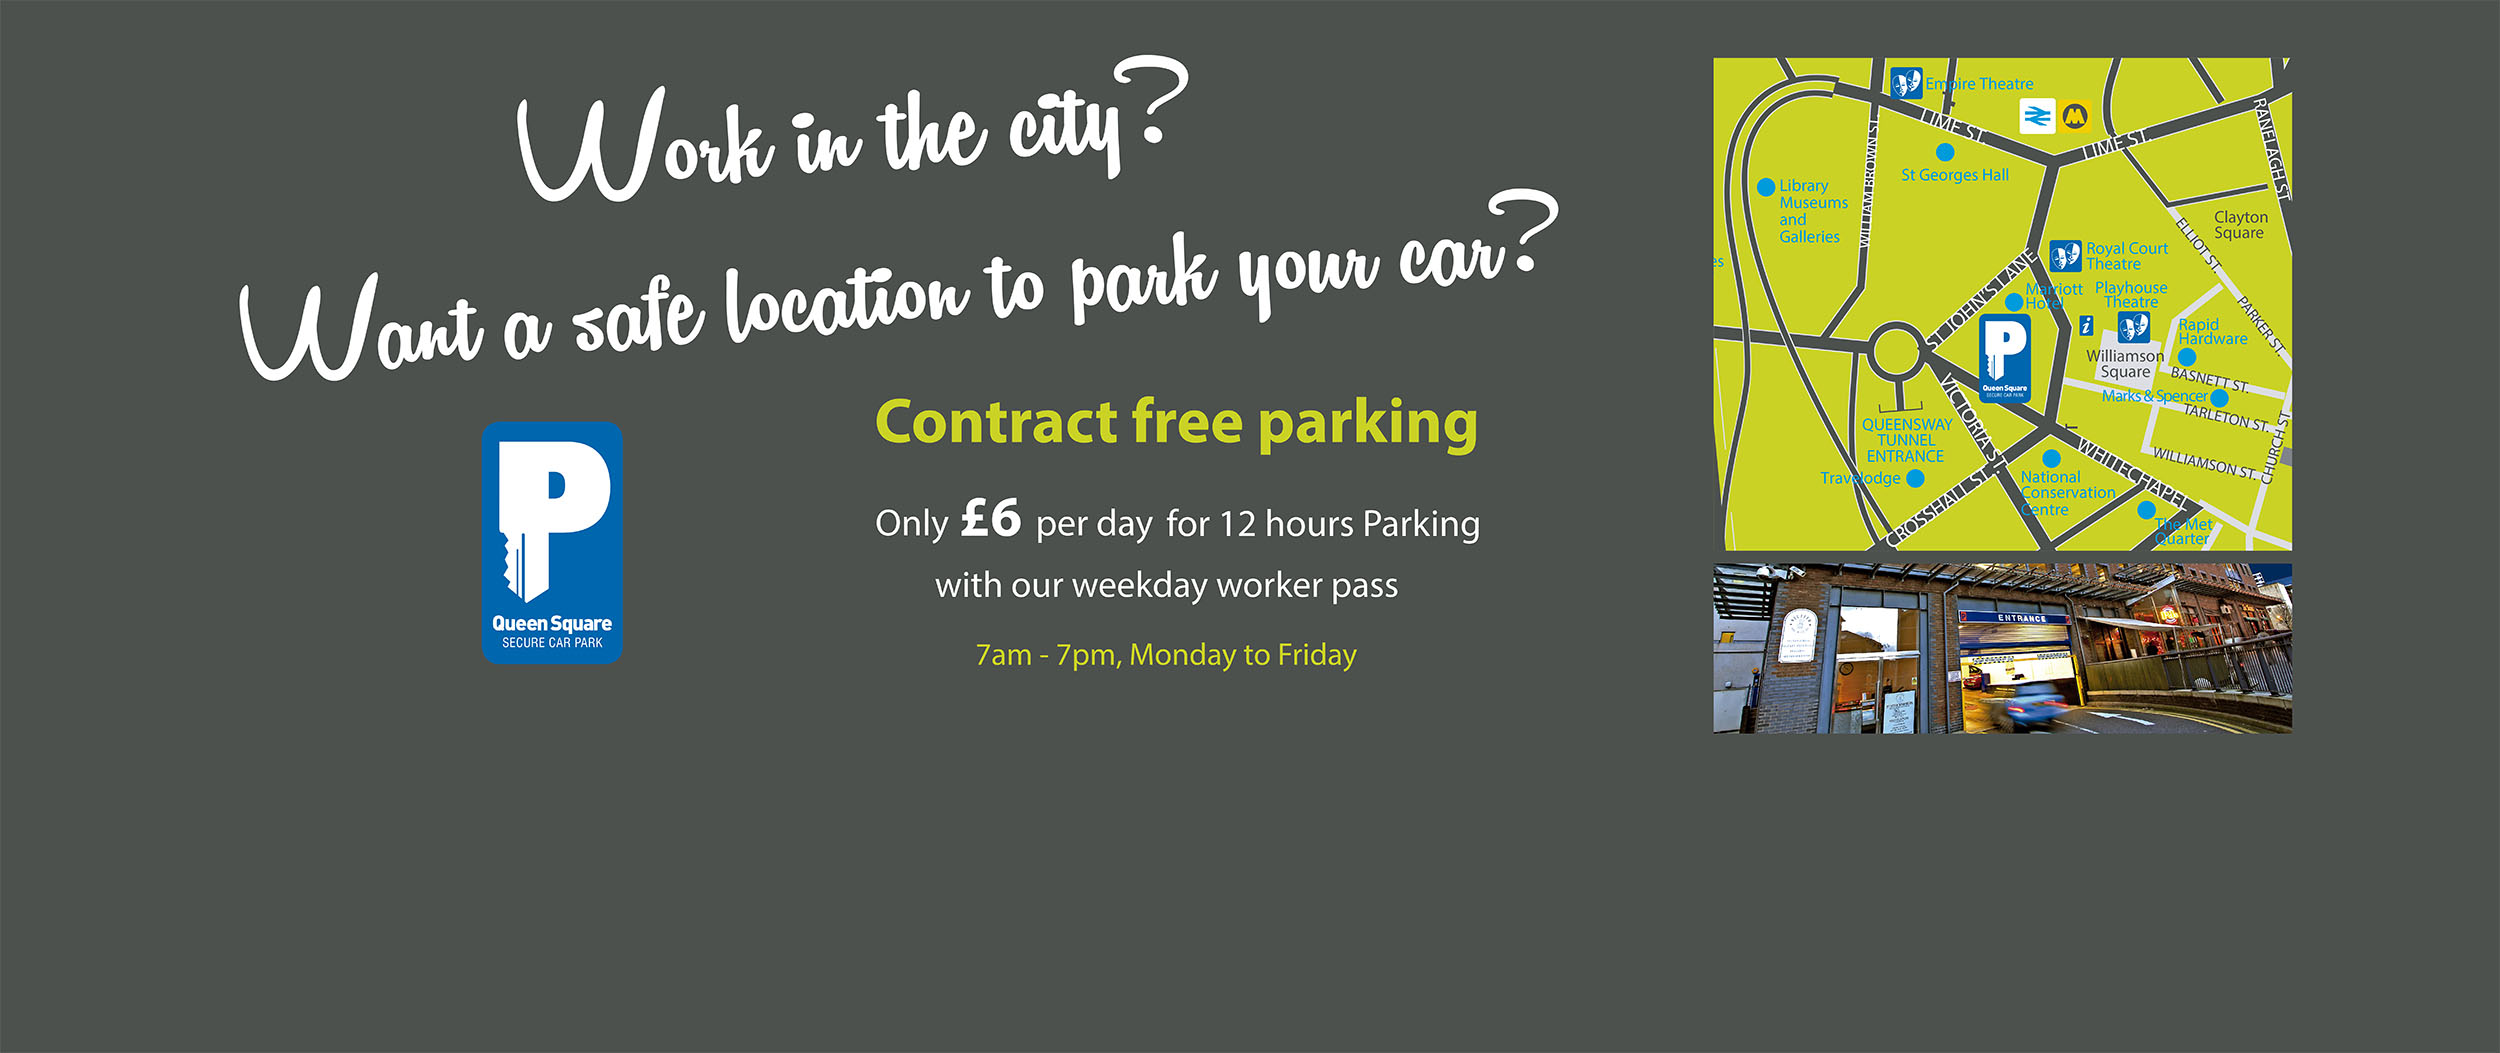 Liverpool-car-park-queen-square